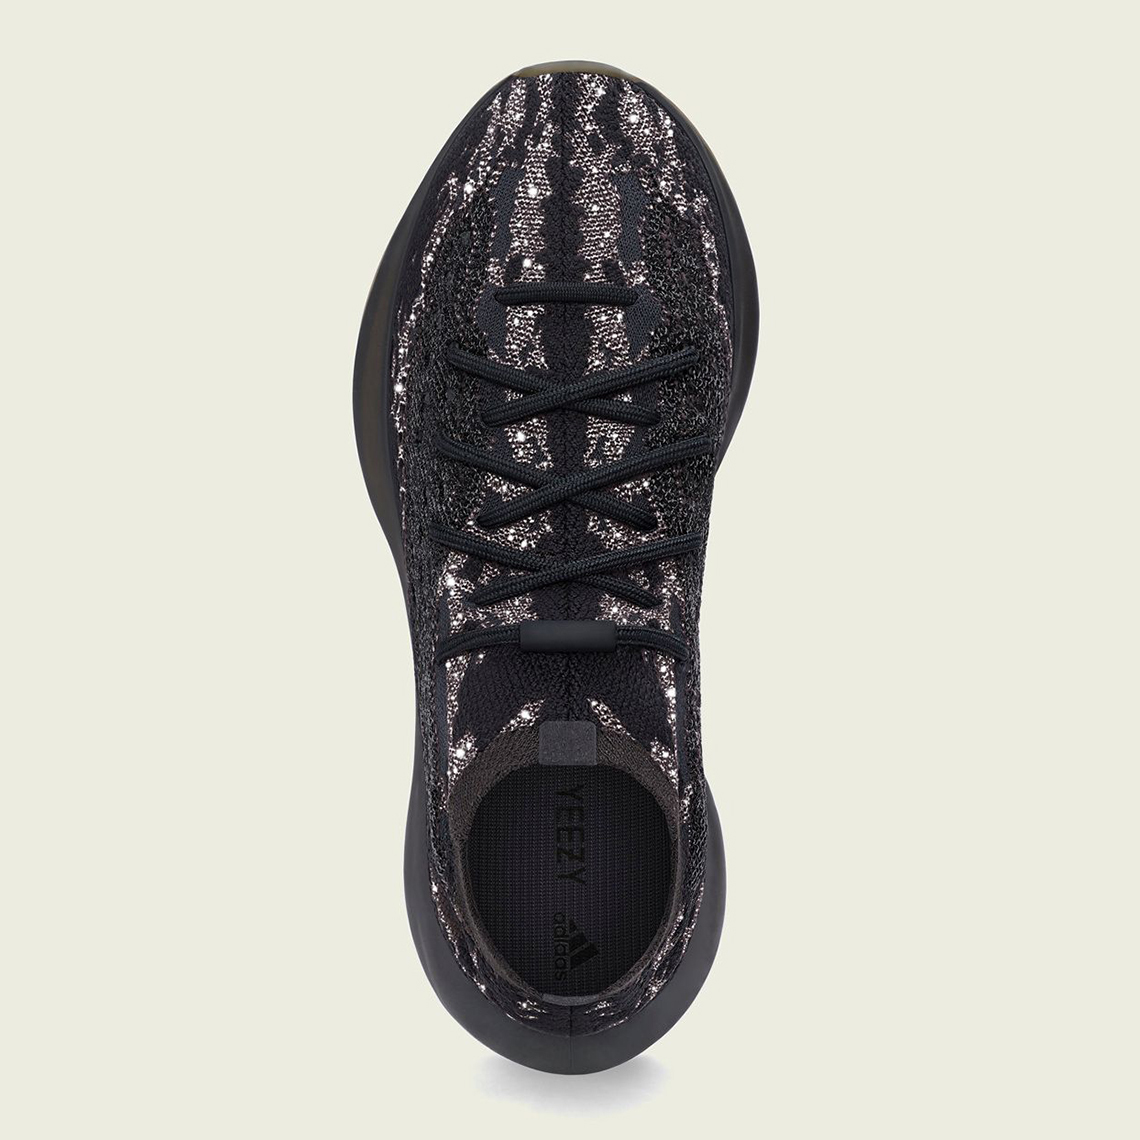 adidas-Yeezy-Boost-380-Onyx-Reflective-Hover-View